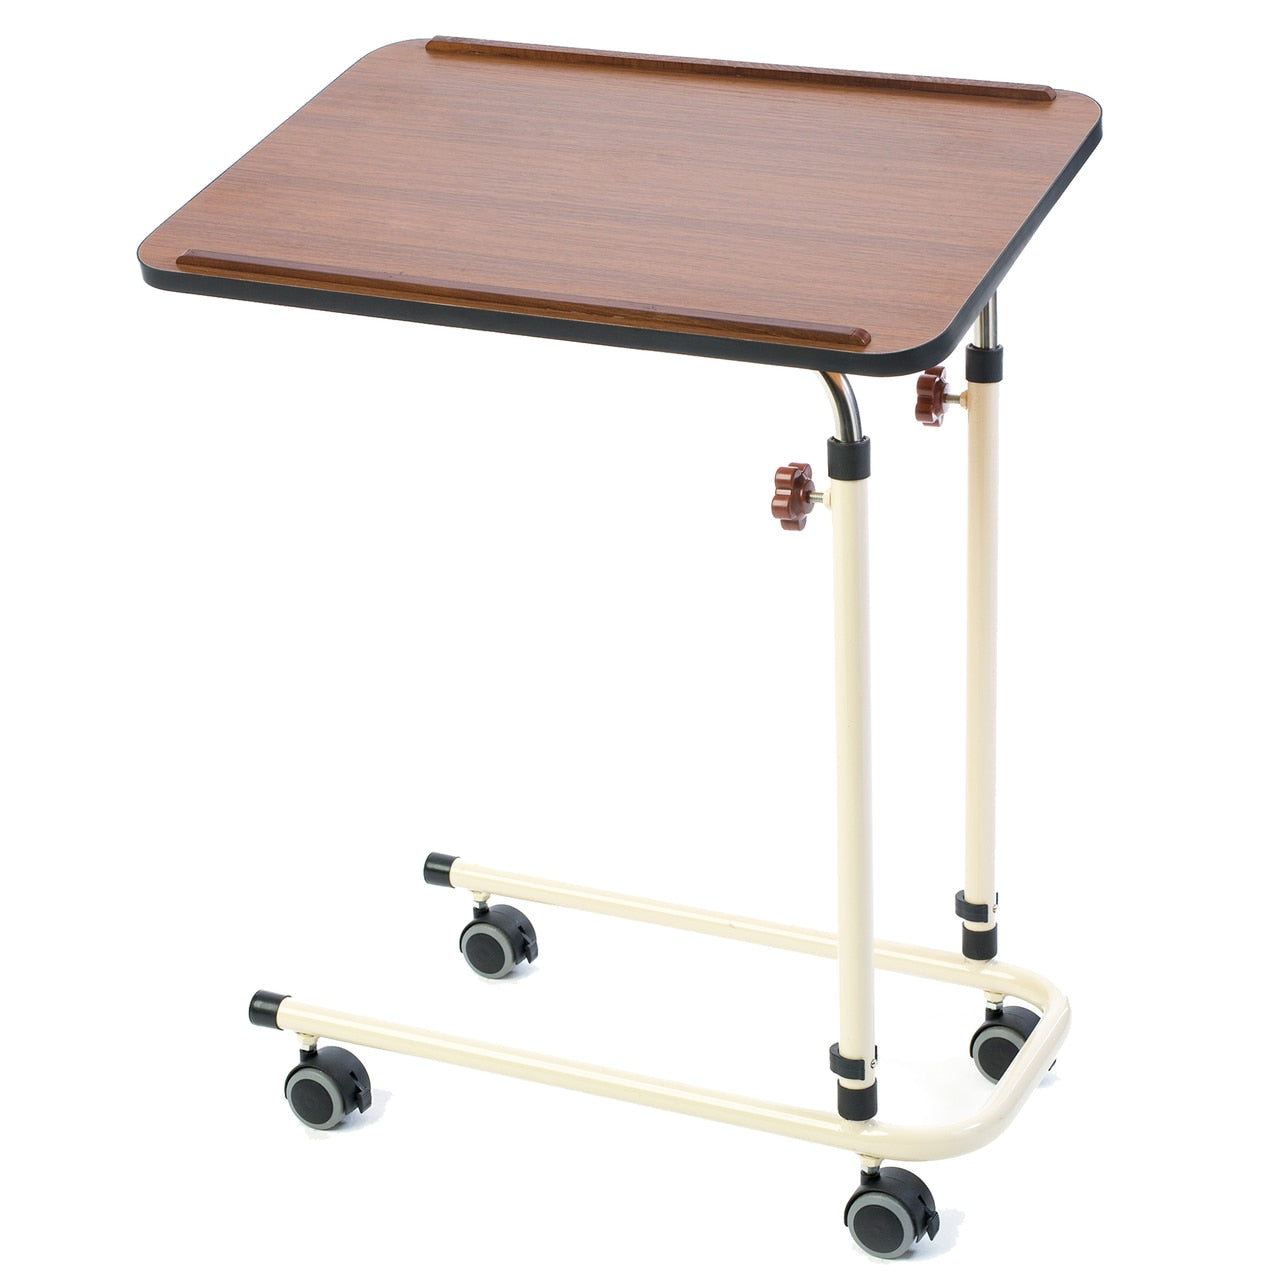 Alerta Walnut Laminate Adjustable Over Bed Table With 4 Braked Wheels / Castors